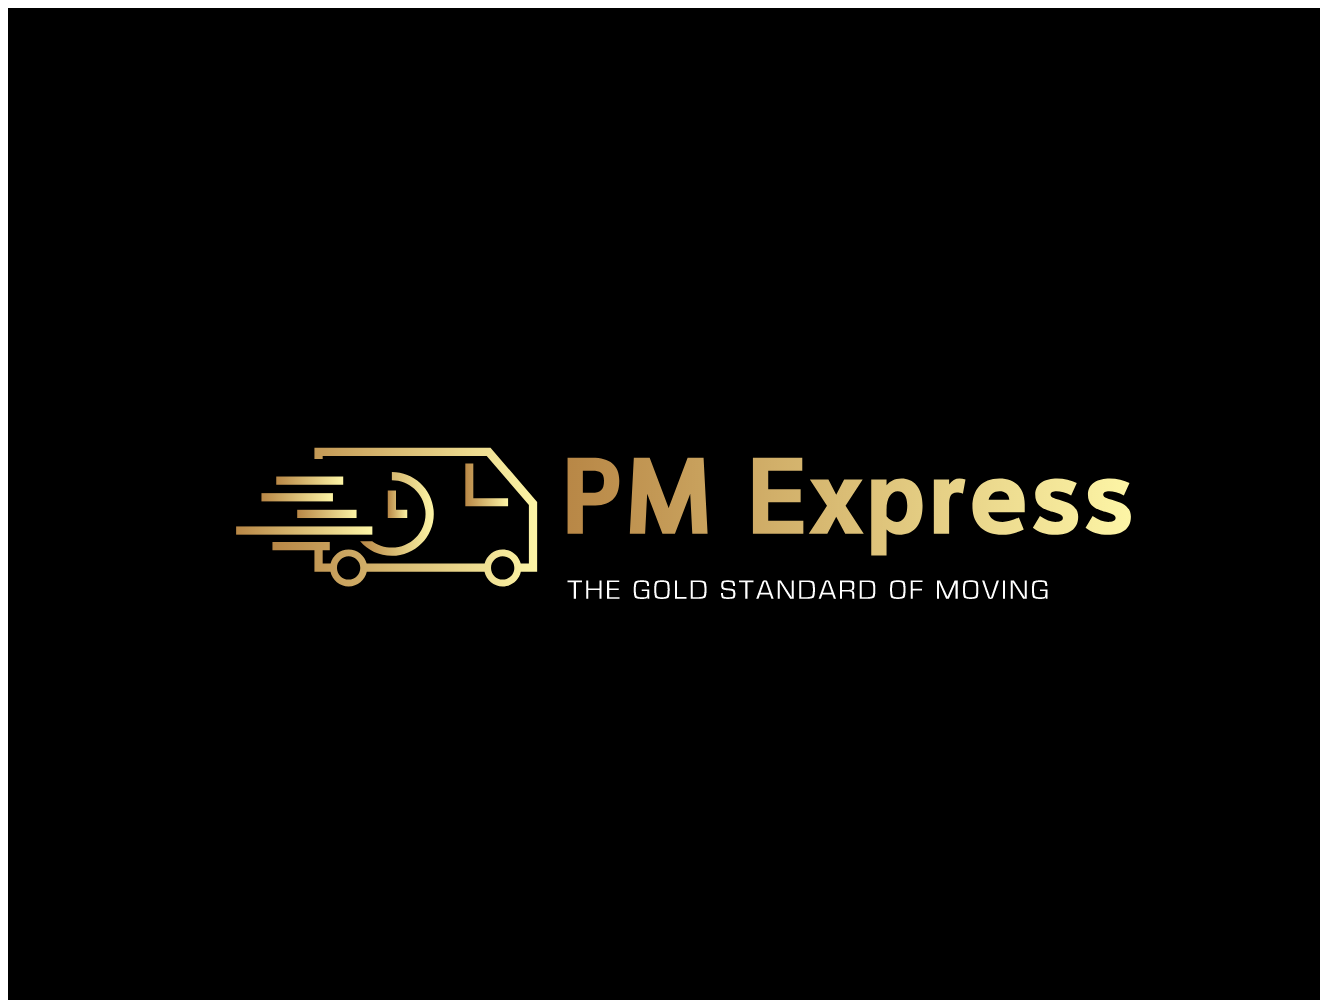 Pro Movers Express